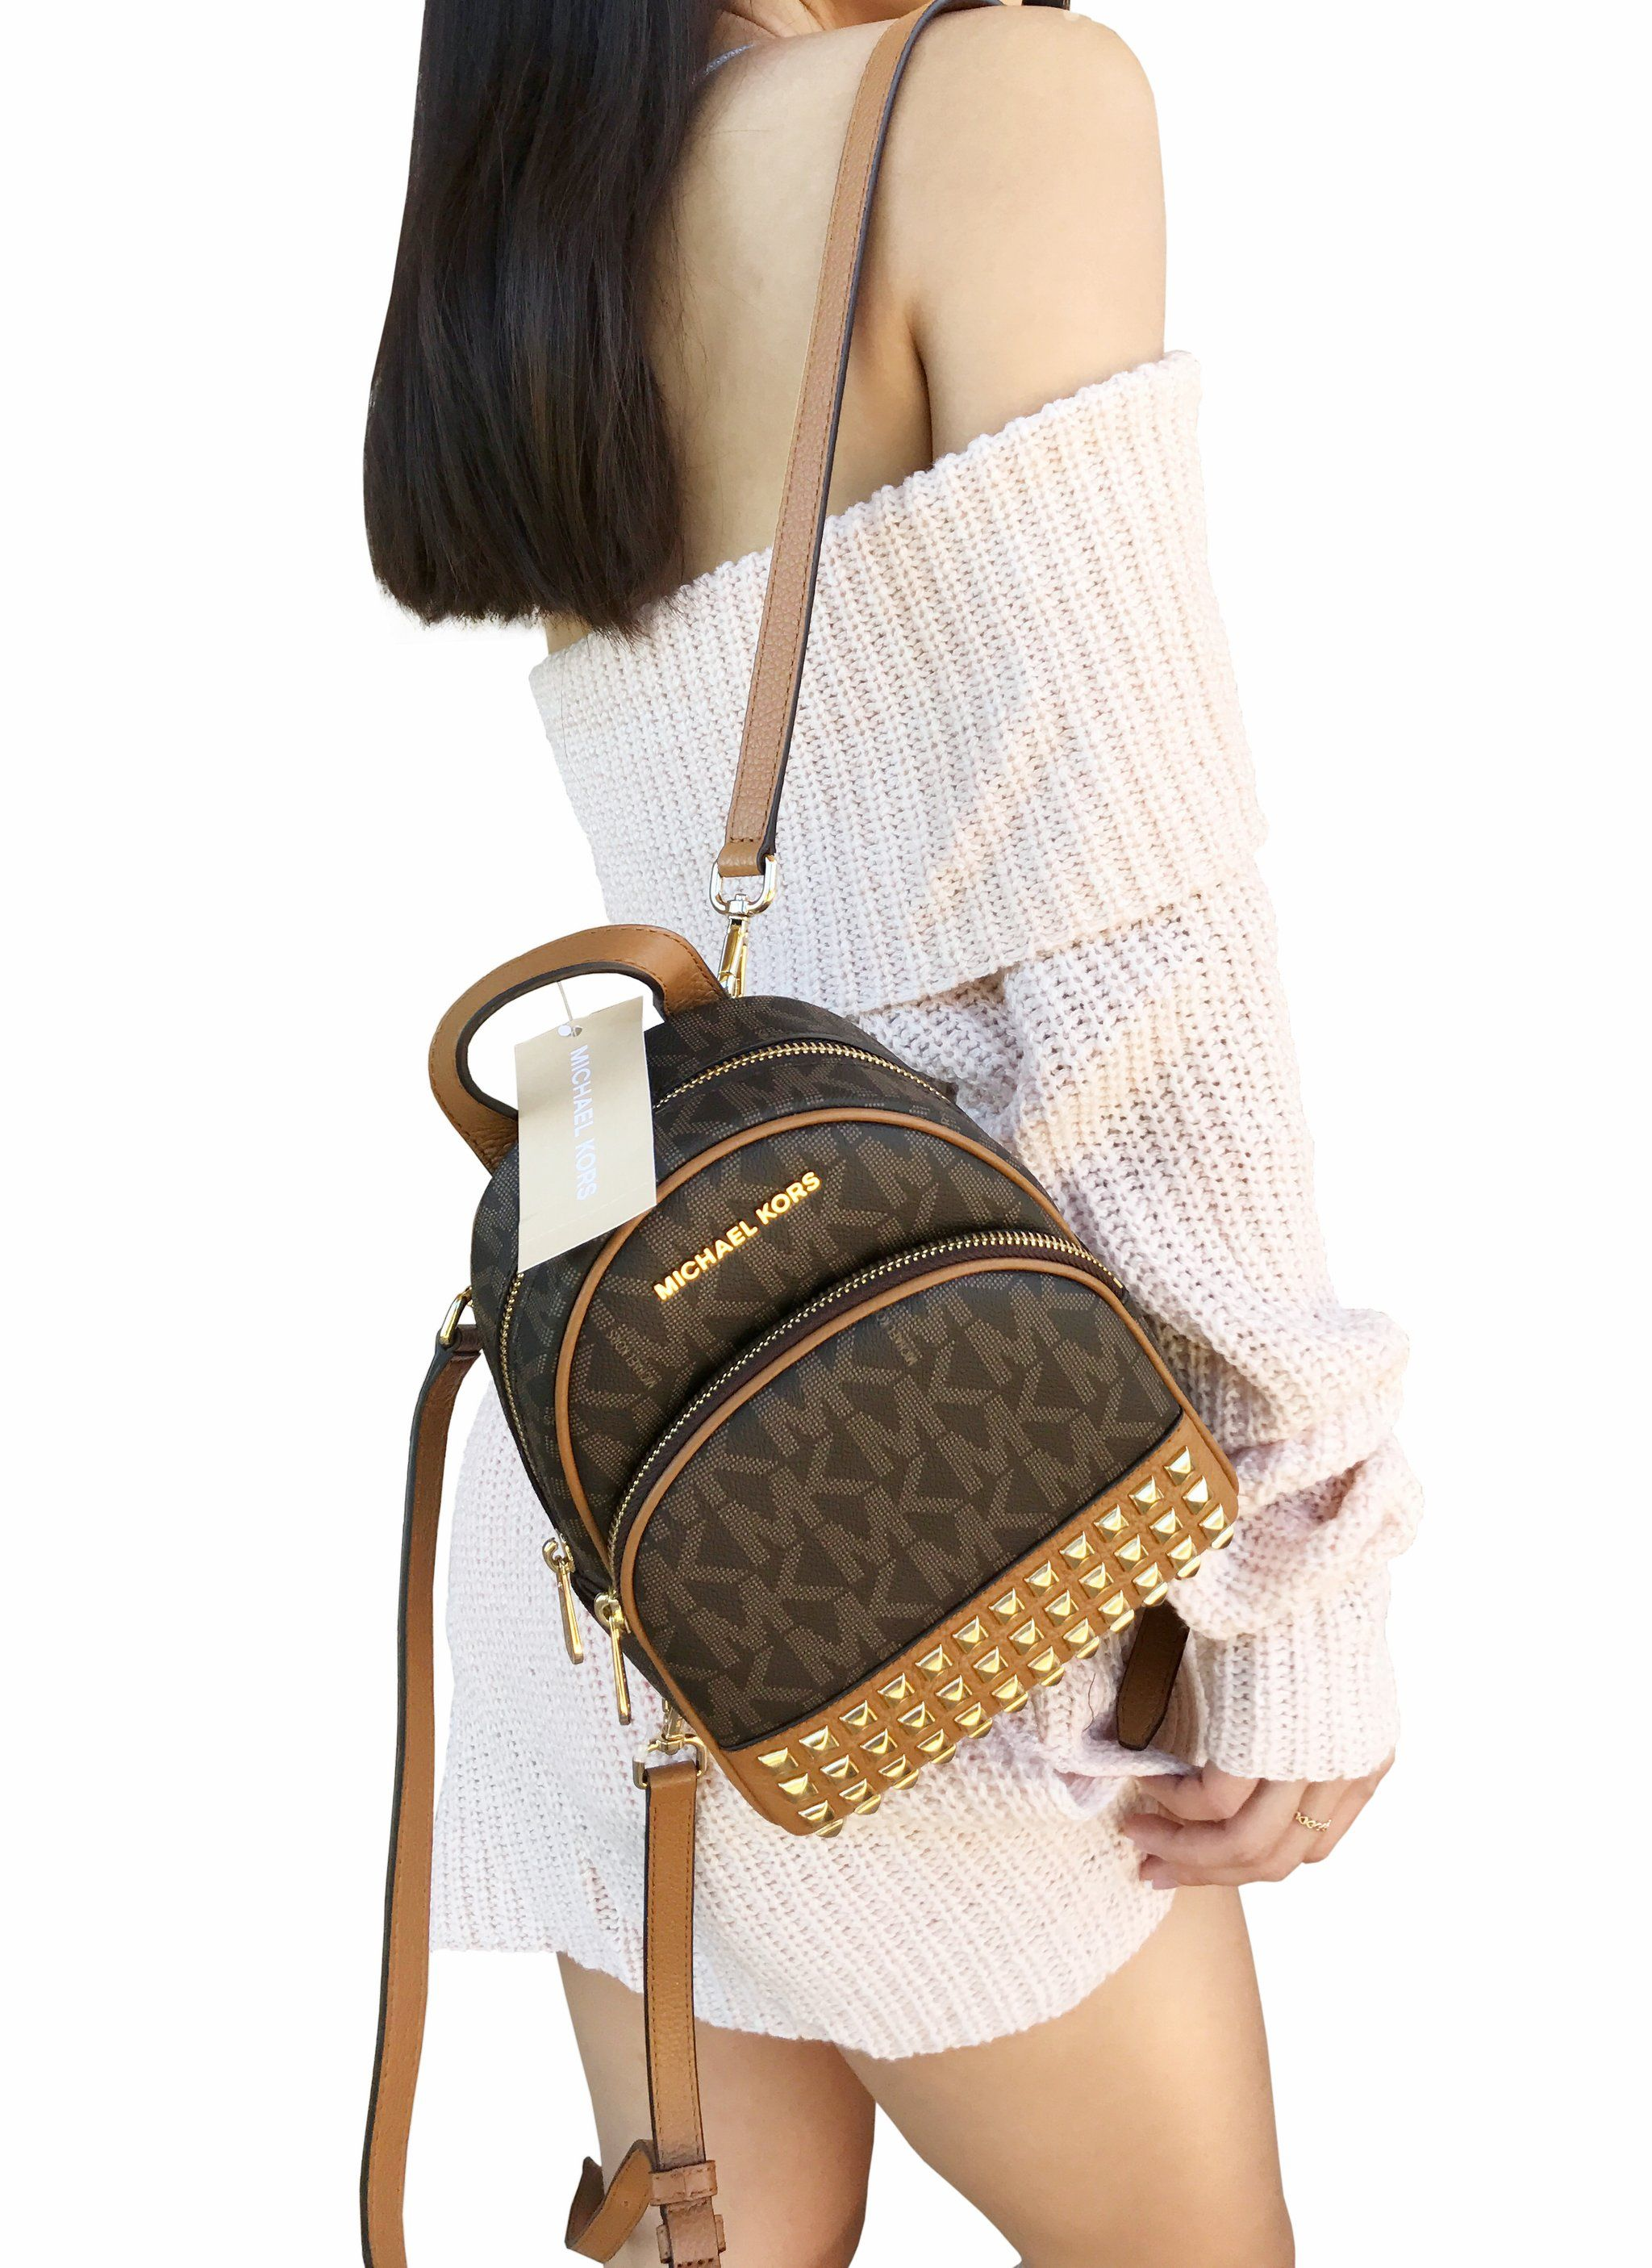 New Arrivals Michael Kors Abbey Mini Backpack Crossbody Stud Brown Acorn Extra Small 86567 E77bf